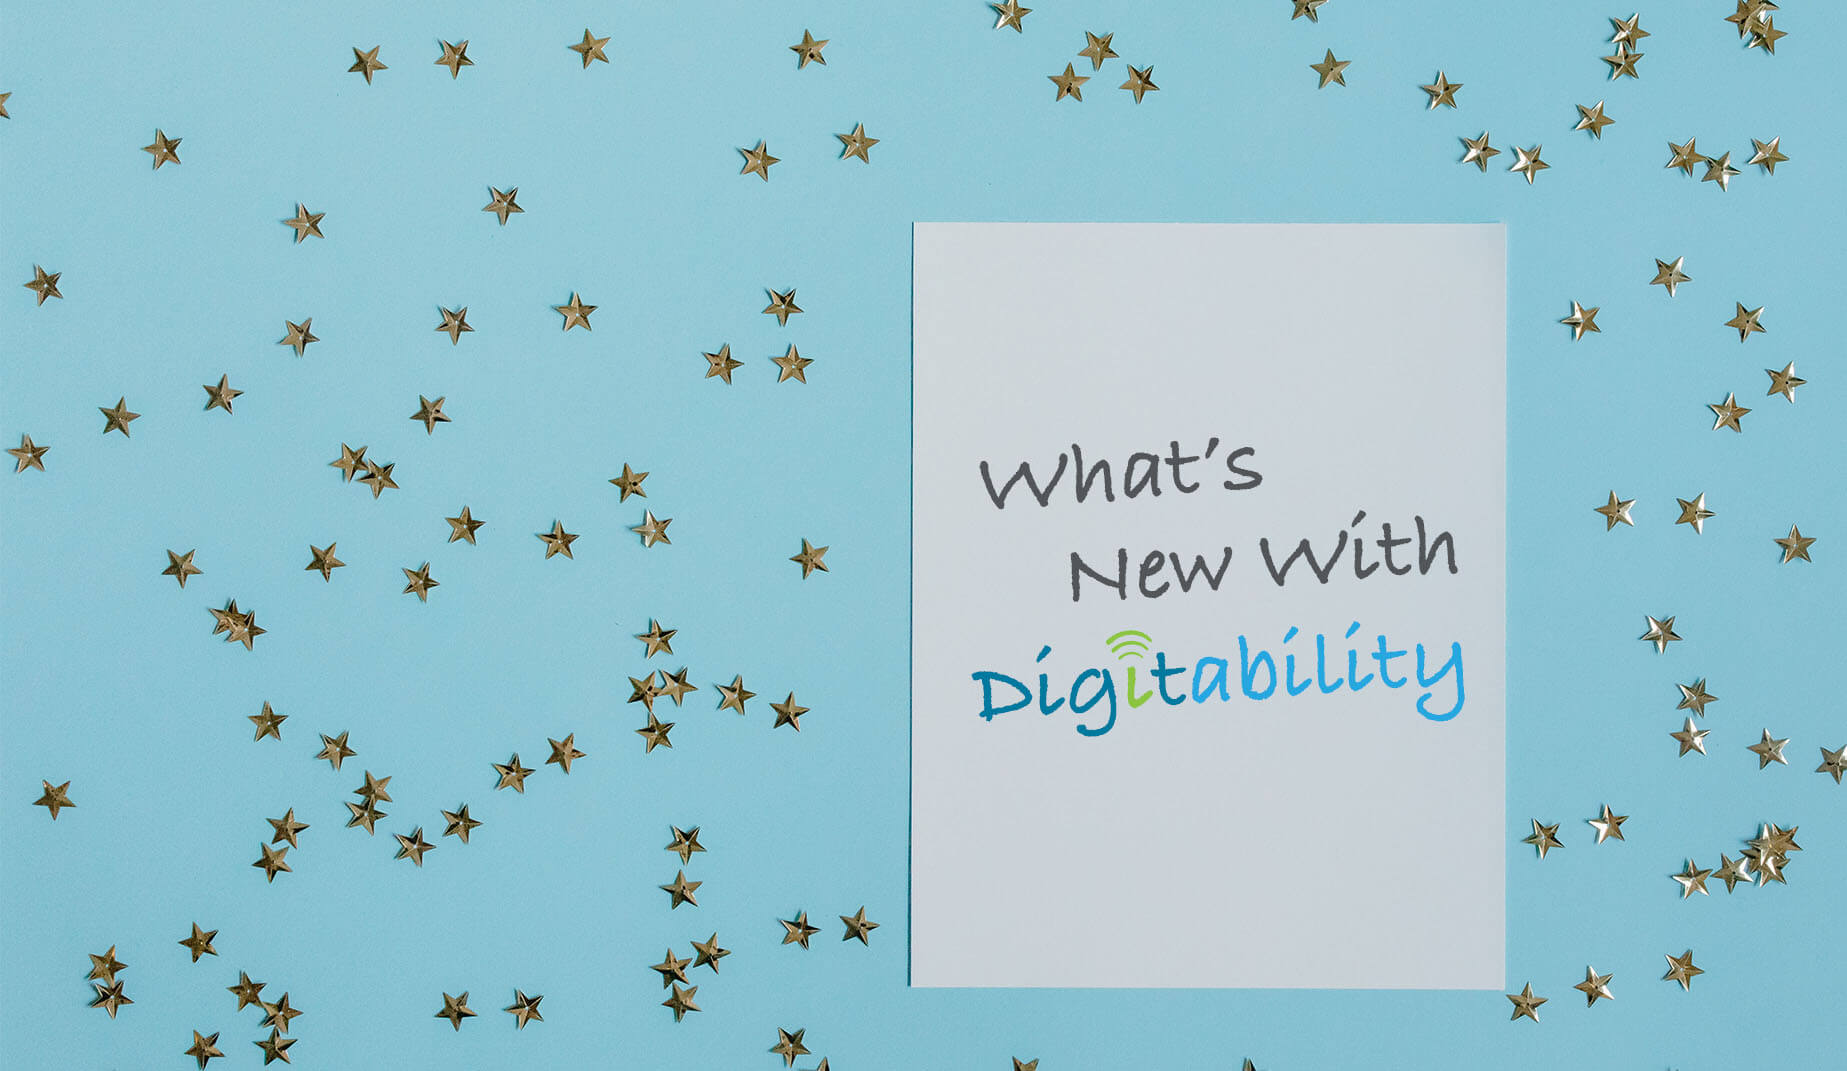 Check Out New Features From Digitability